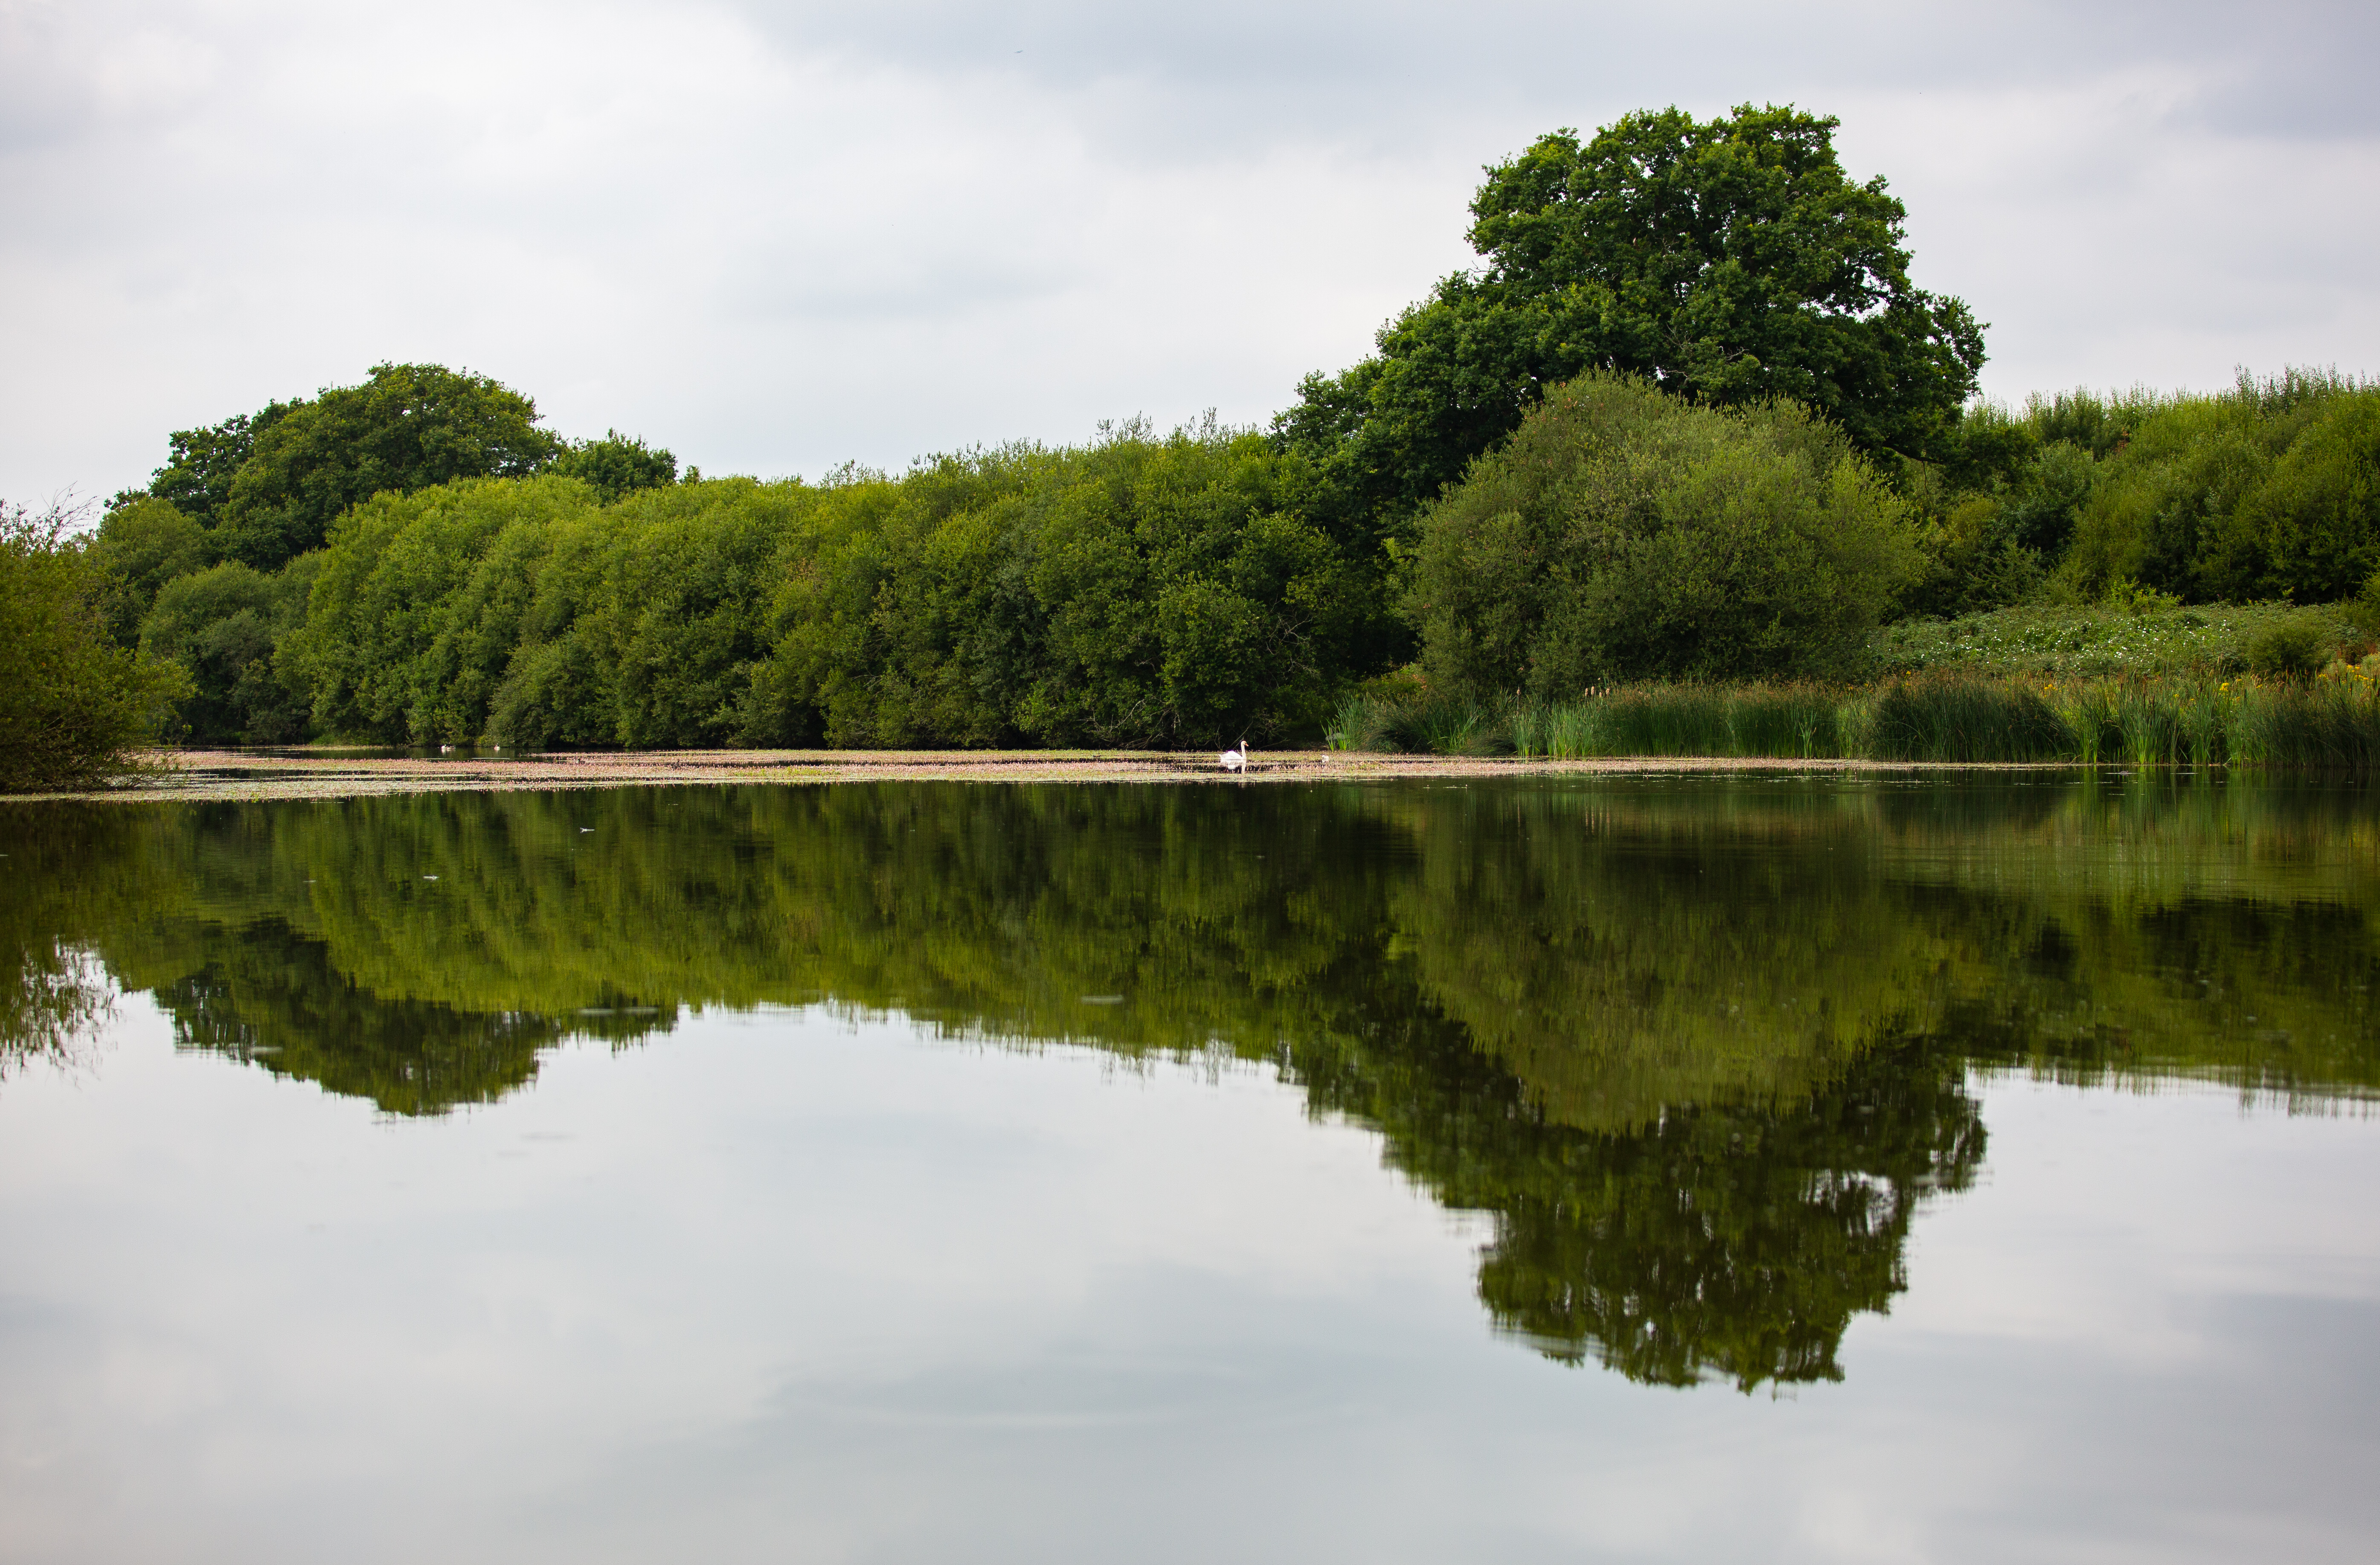 View of the hammer pond at knopp estate - zeiss nature walk - park cameras - ashley laurence